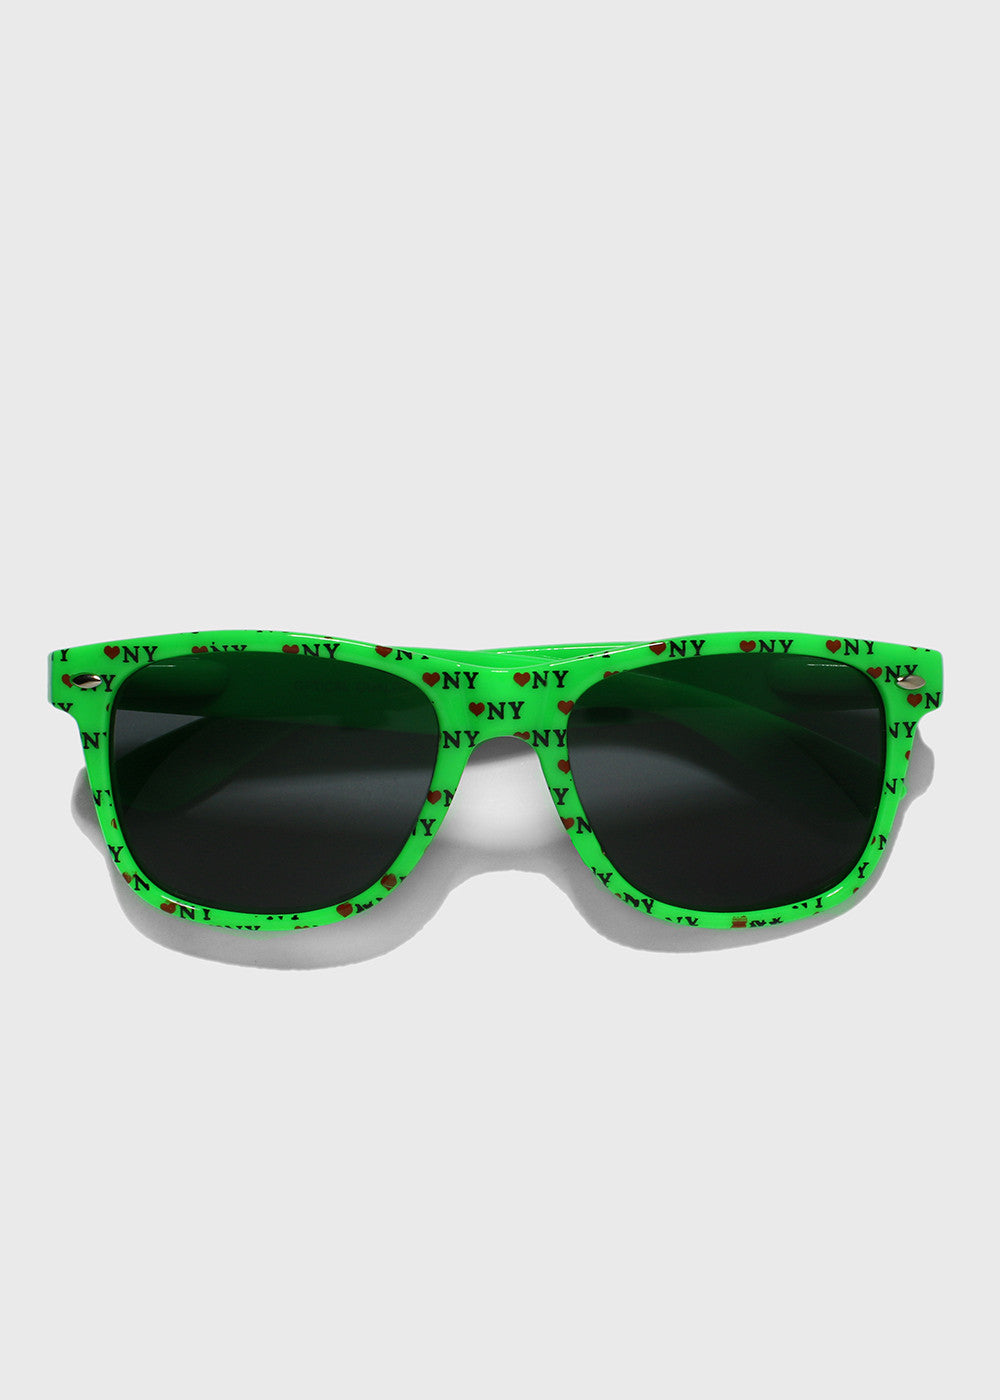 NY Print Sunglasses- Green